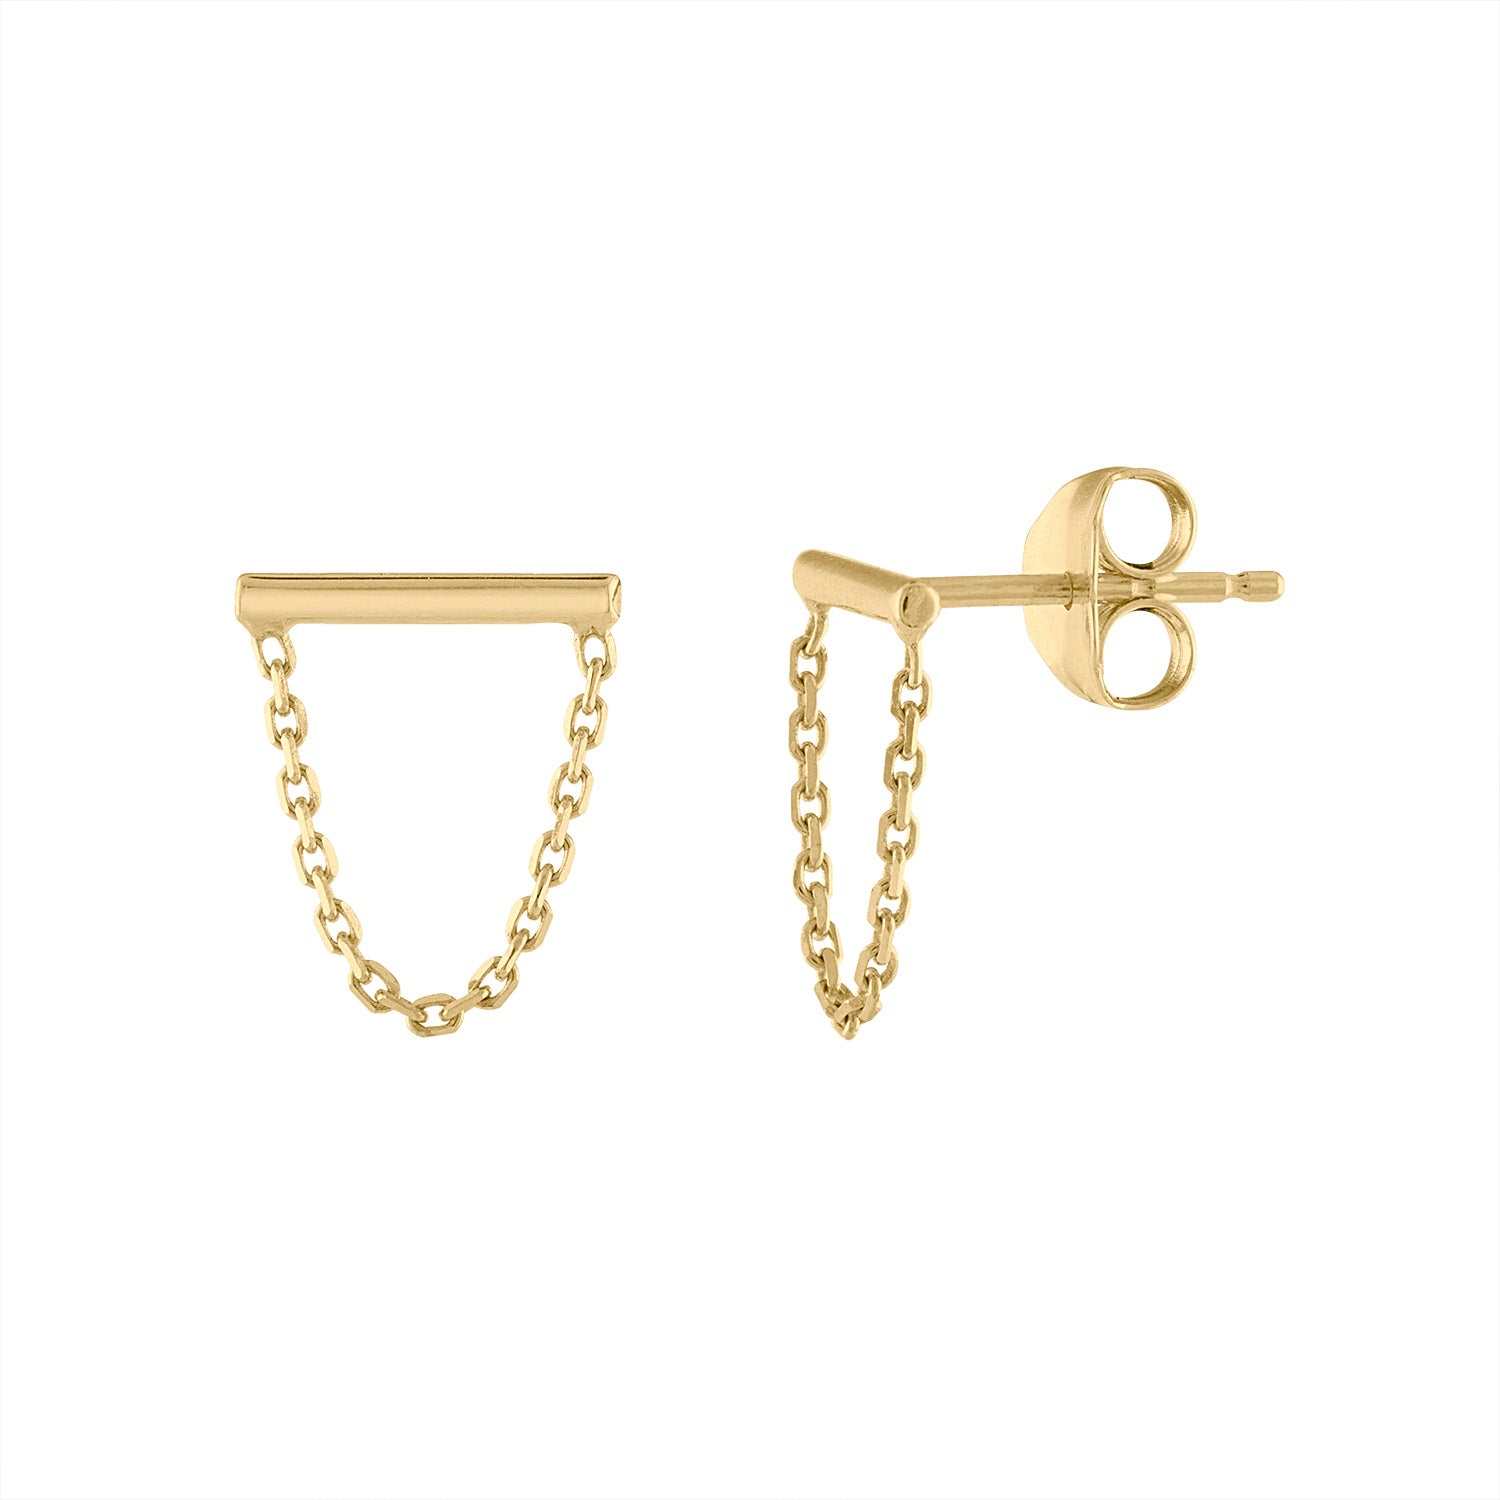 14KT GOLD BAR AND CHAIN EARRING